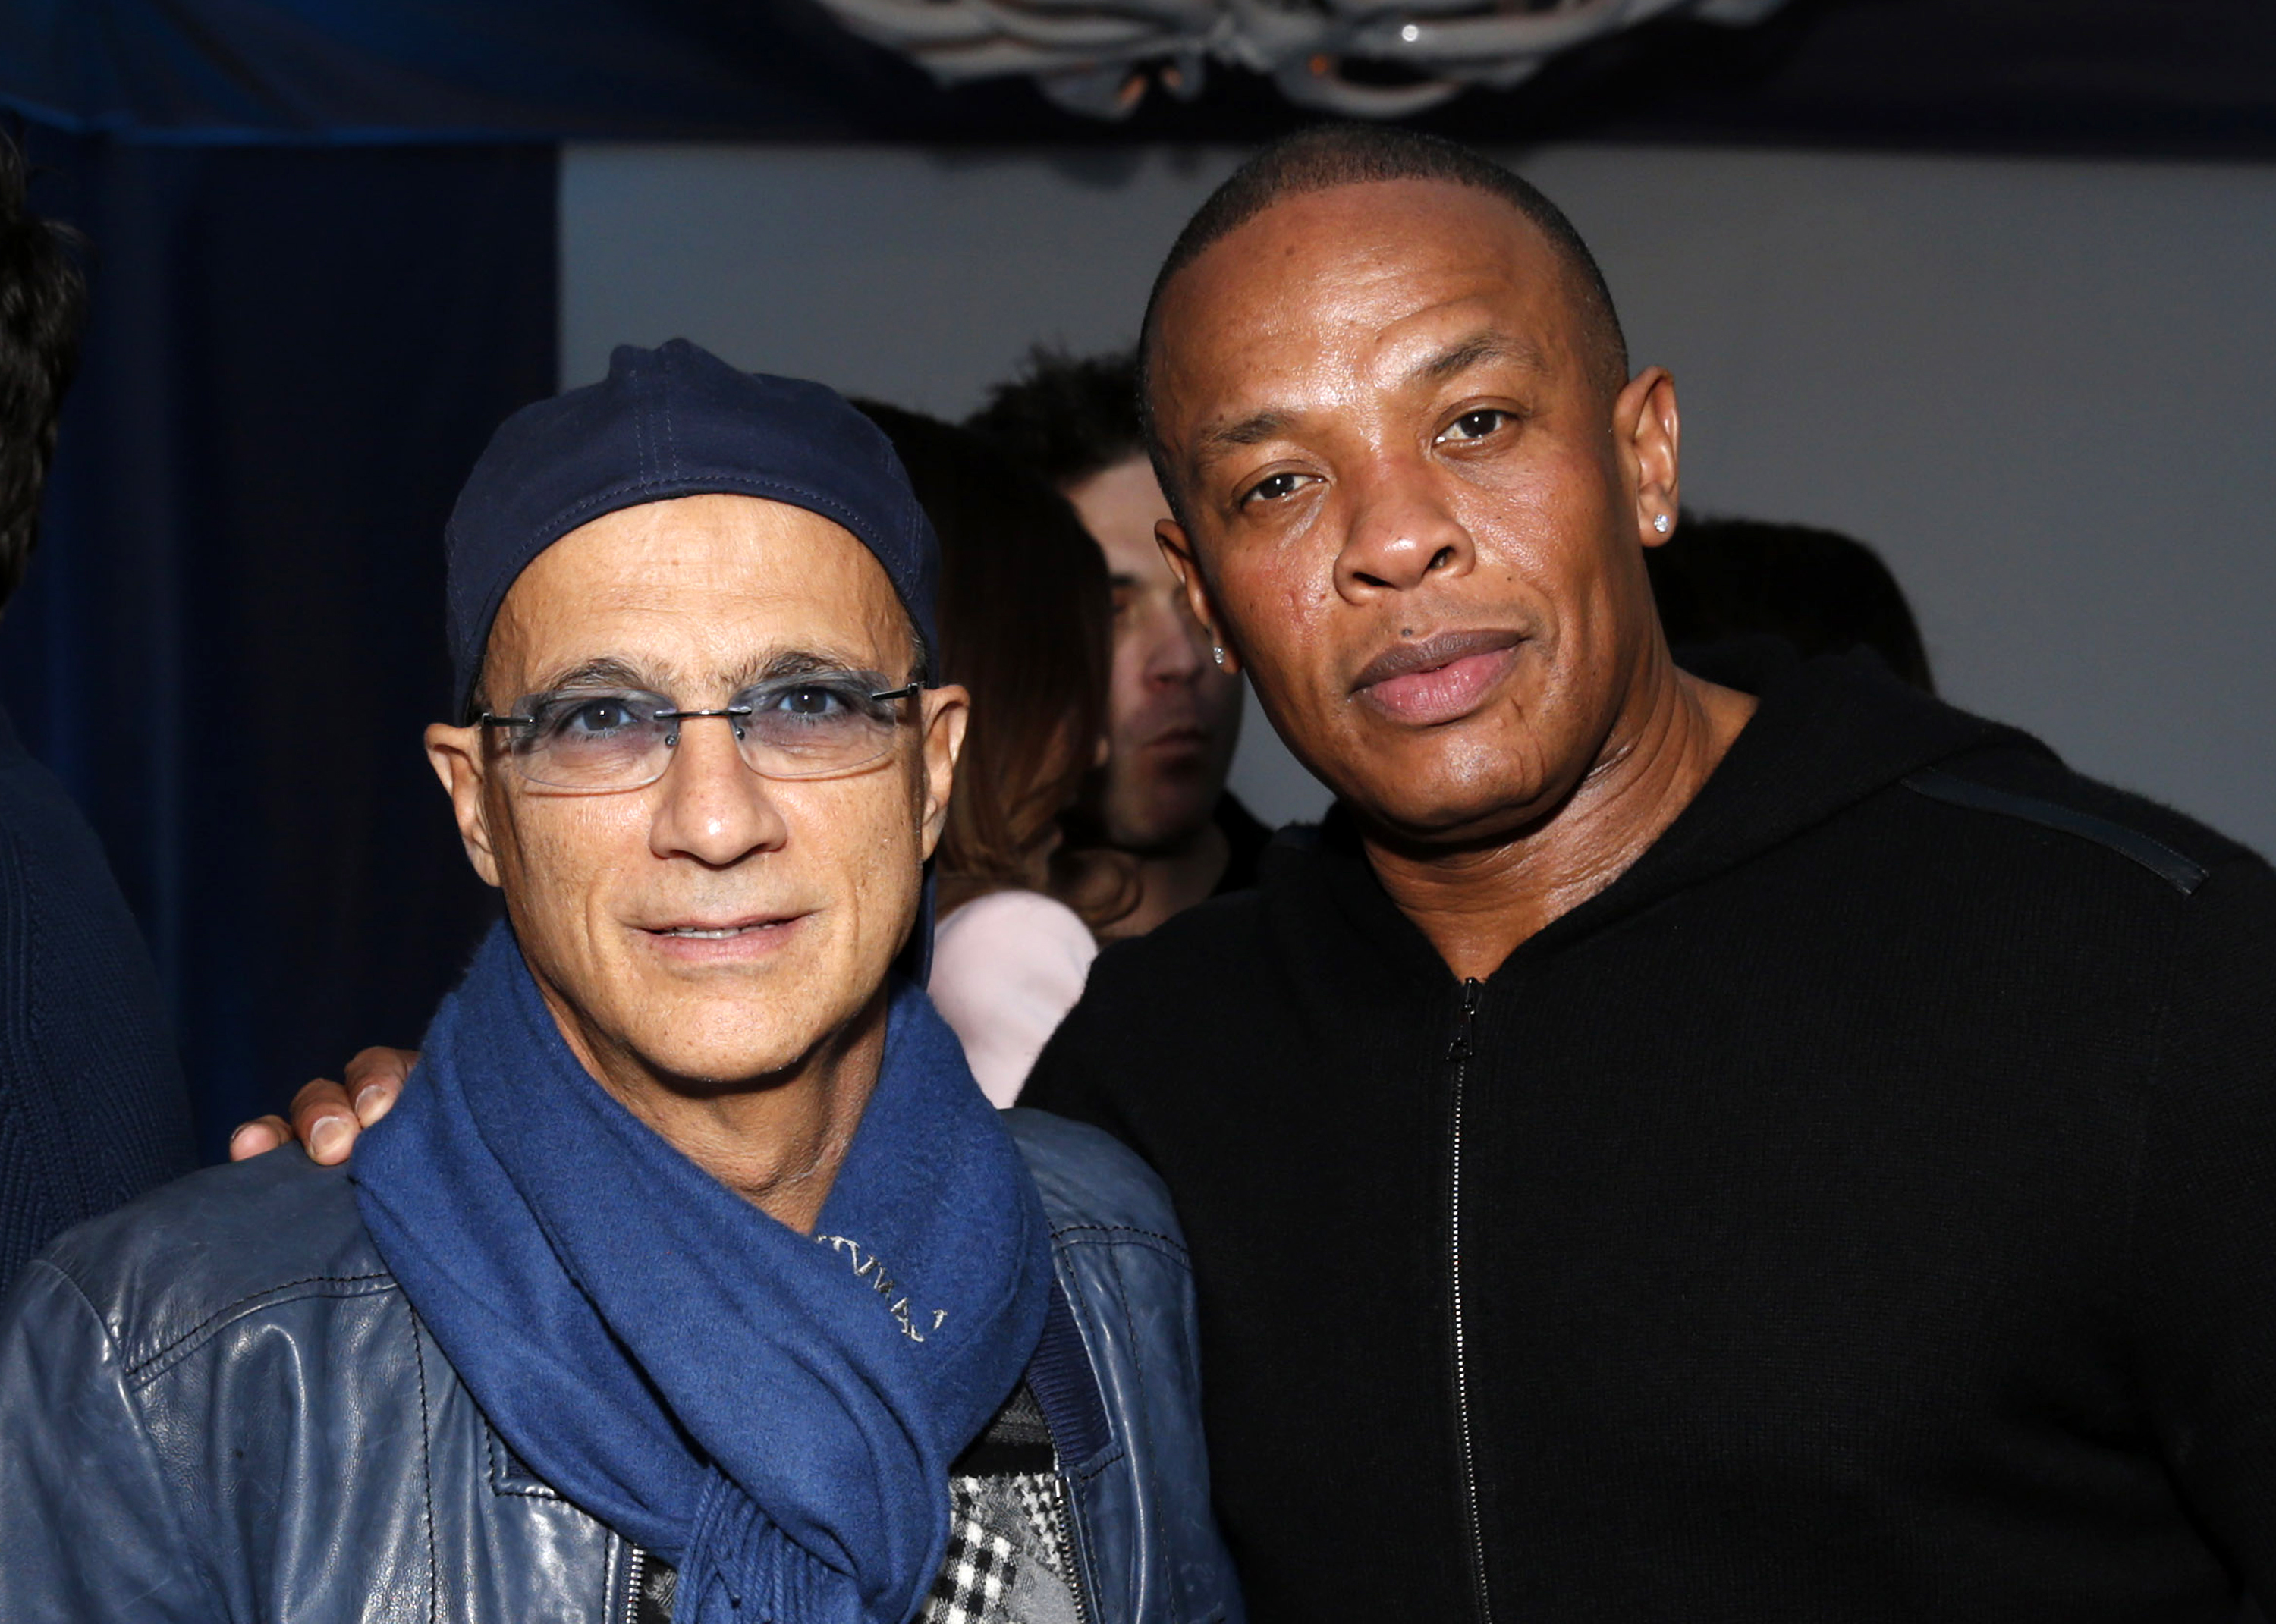 Music industry entrepreneur Jimmy Iovine, left, and hip-hop mogul Dr. Dre at a Grammy Party in Los Angeles on Feb. 10, 2013.